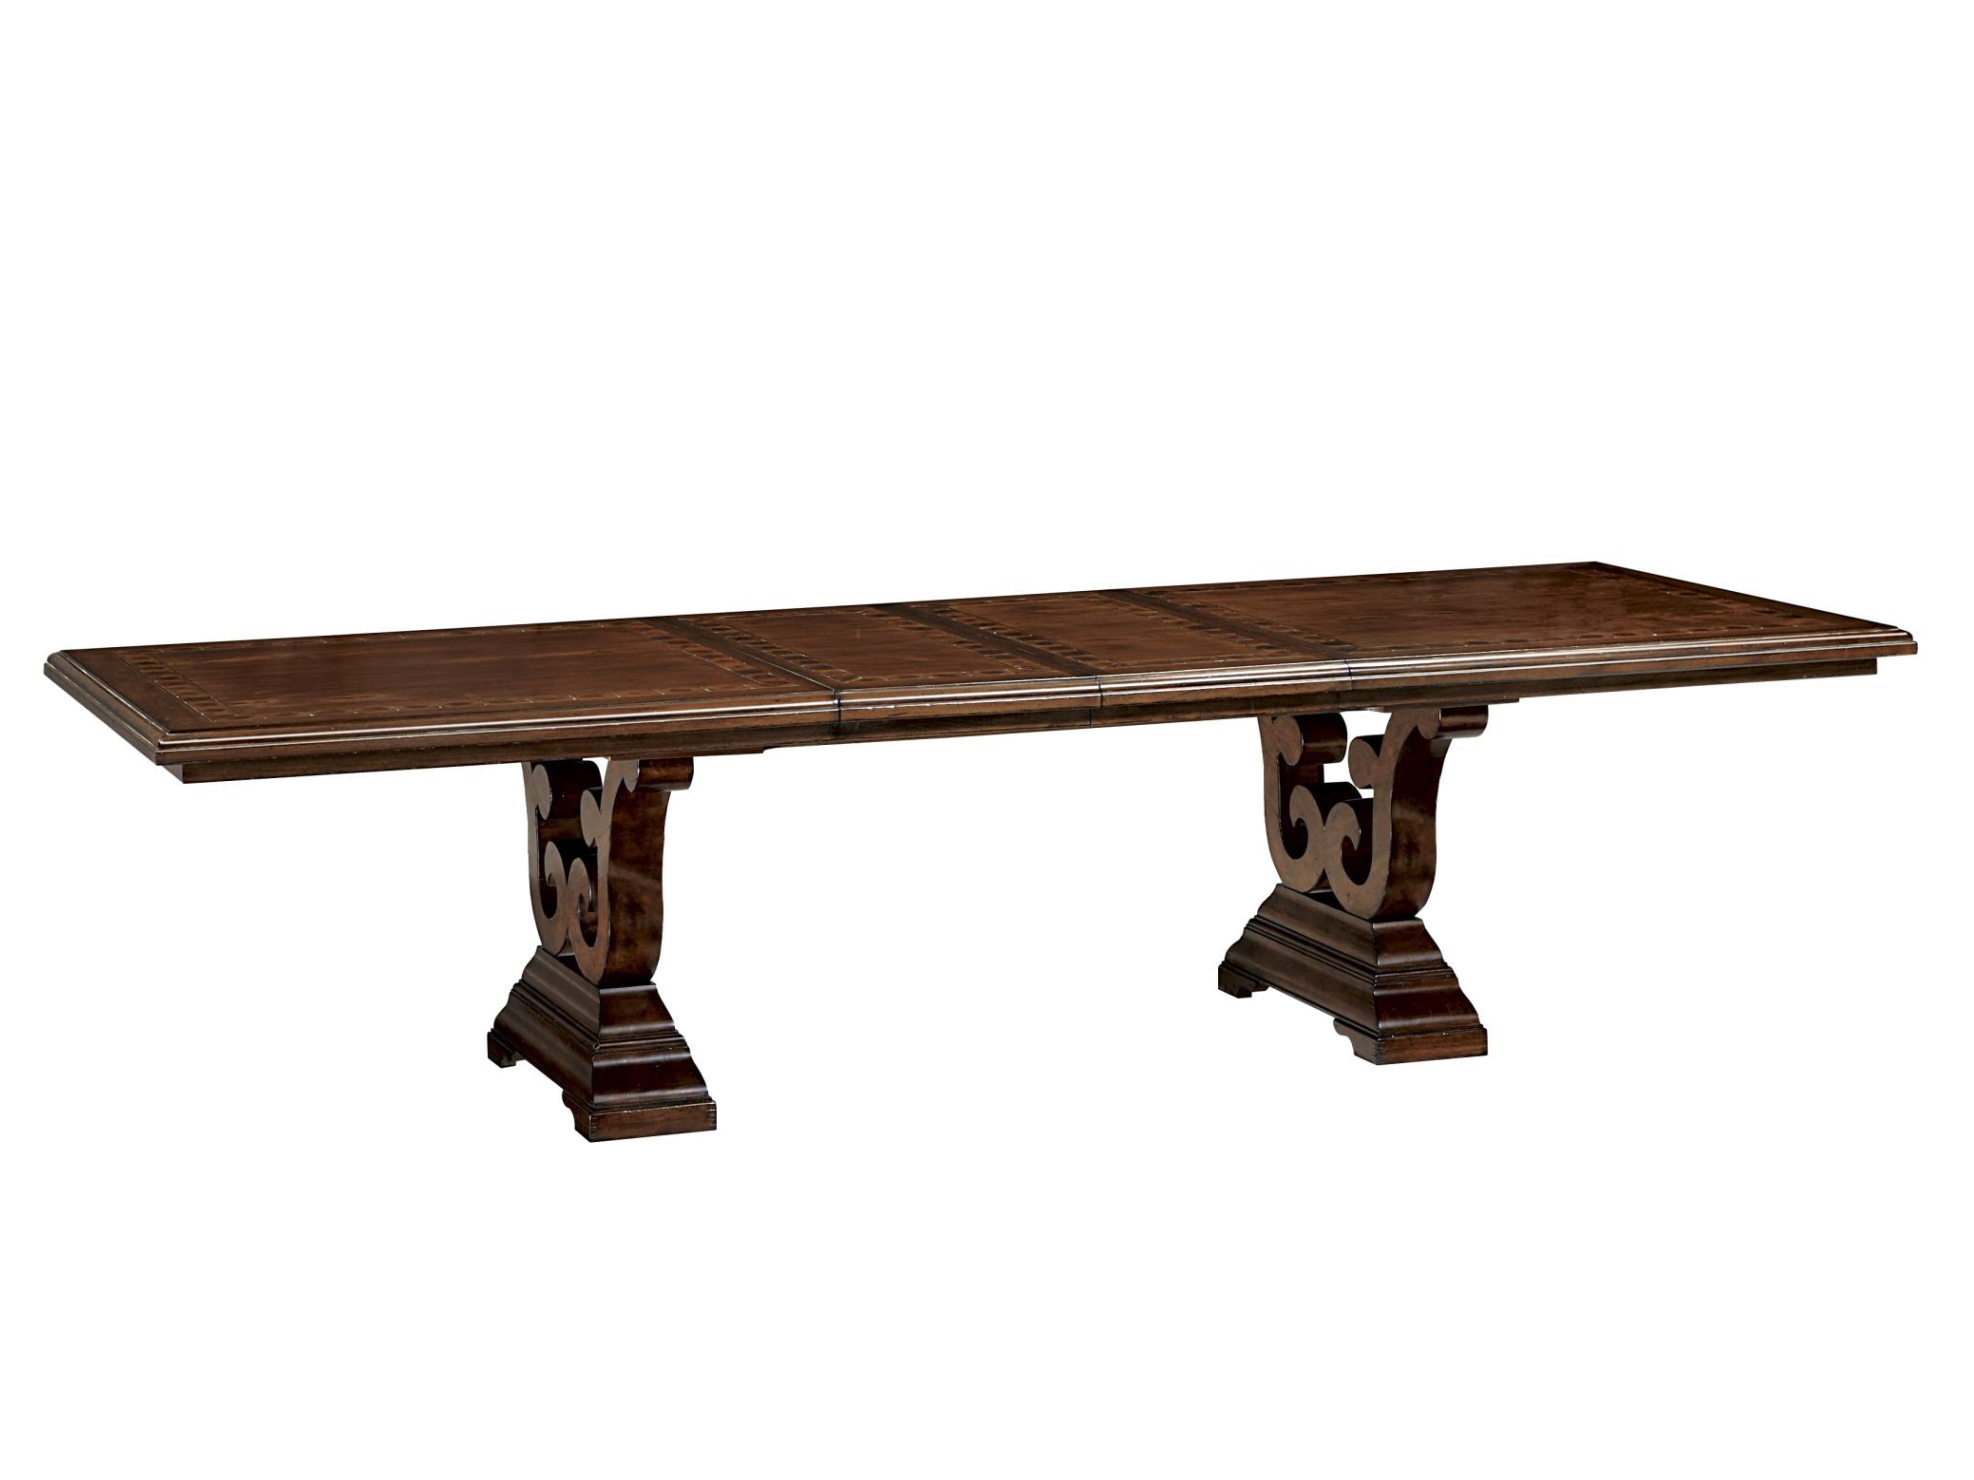 Fine Furniture Design Harbor Springs Trestle Dining Table Top And Base